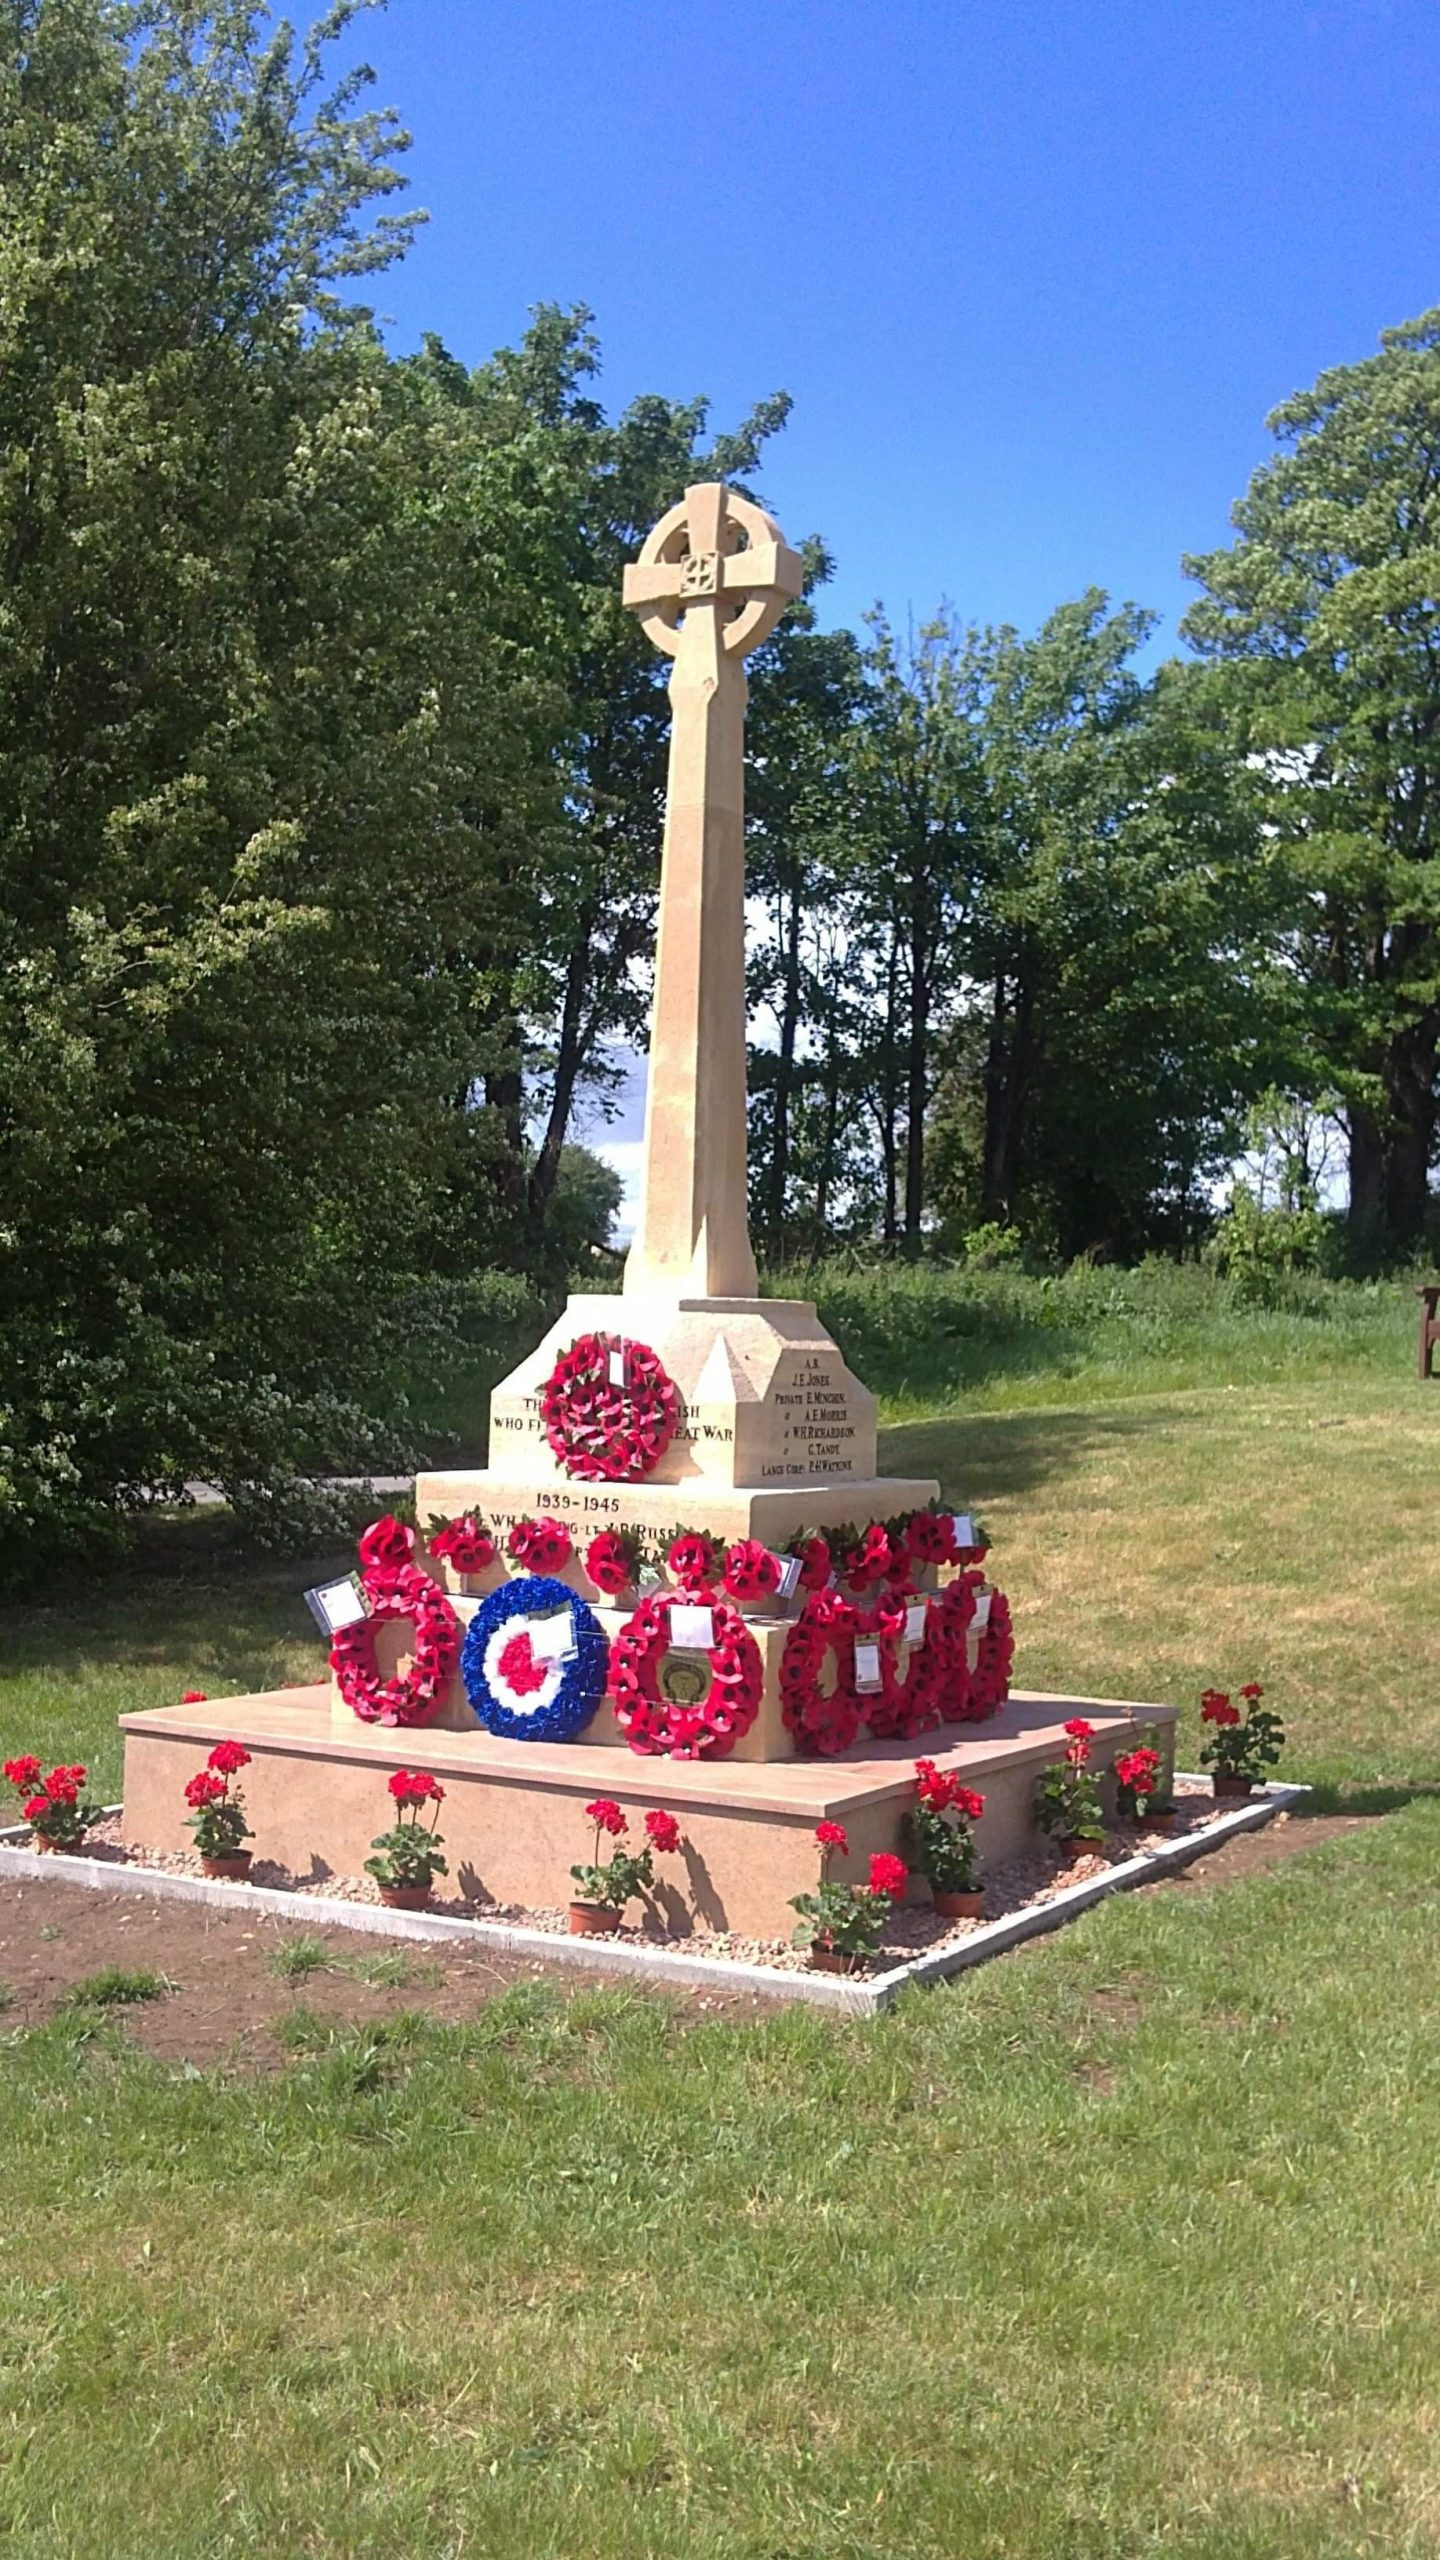 A Picture of the warm memorial in Bromsberrow with rememberance day poppy wreaths around the base